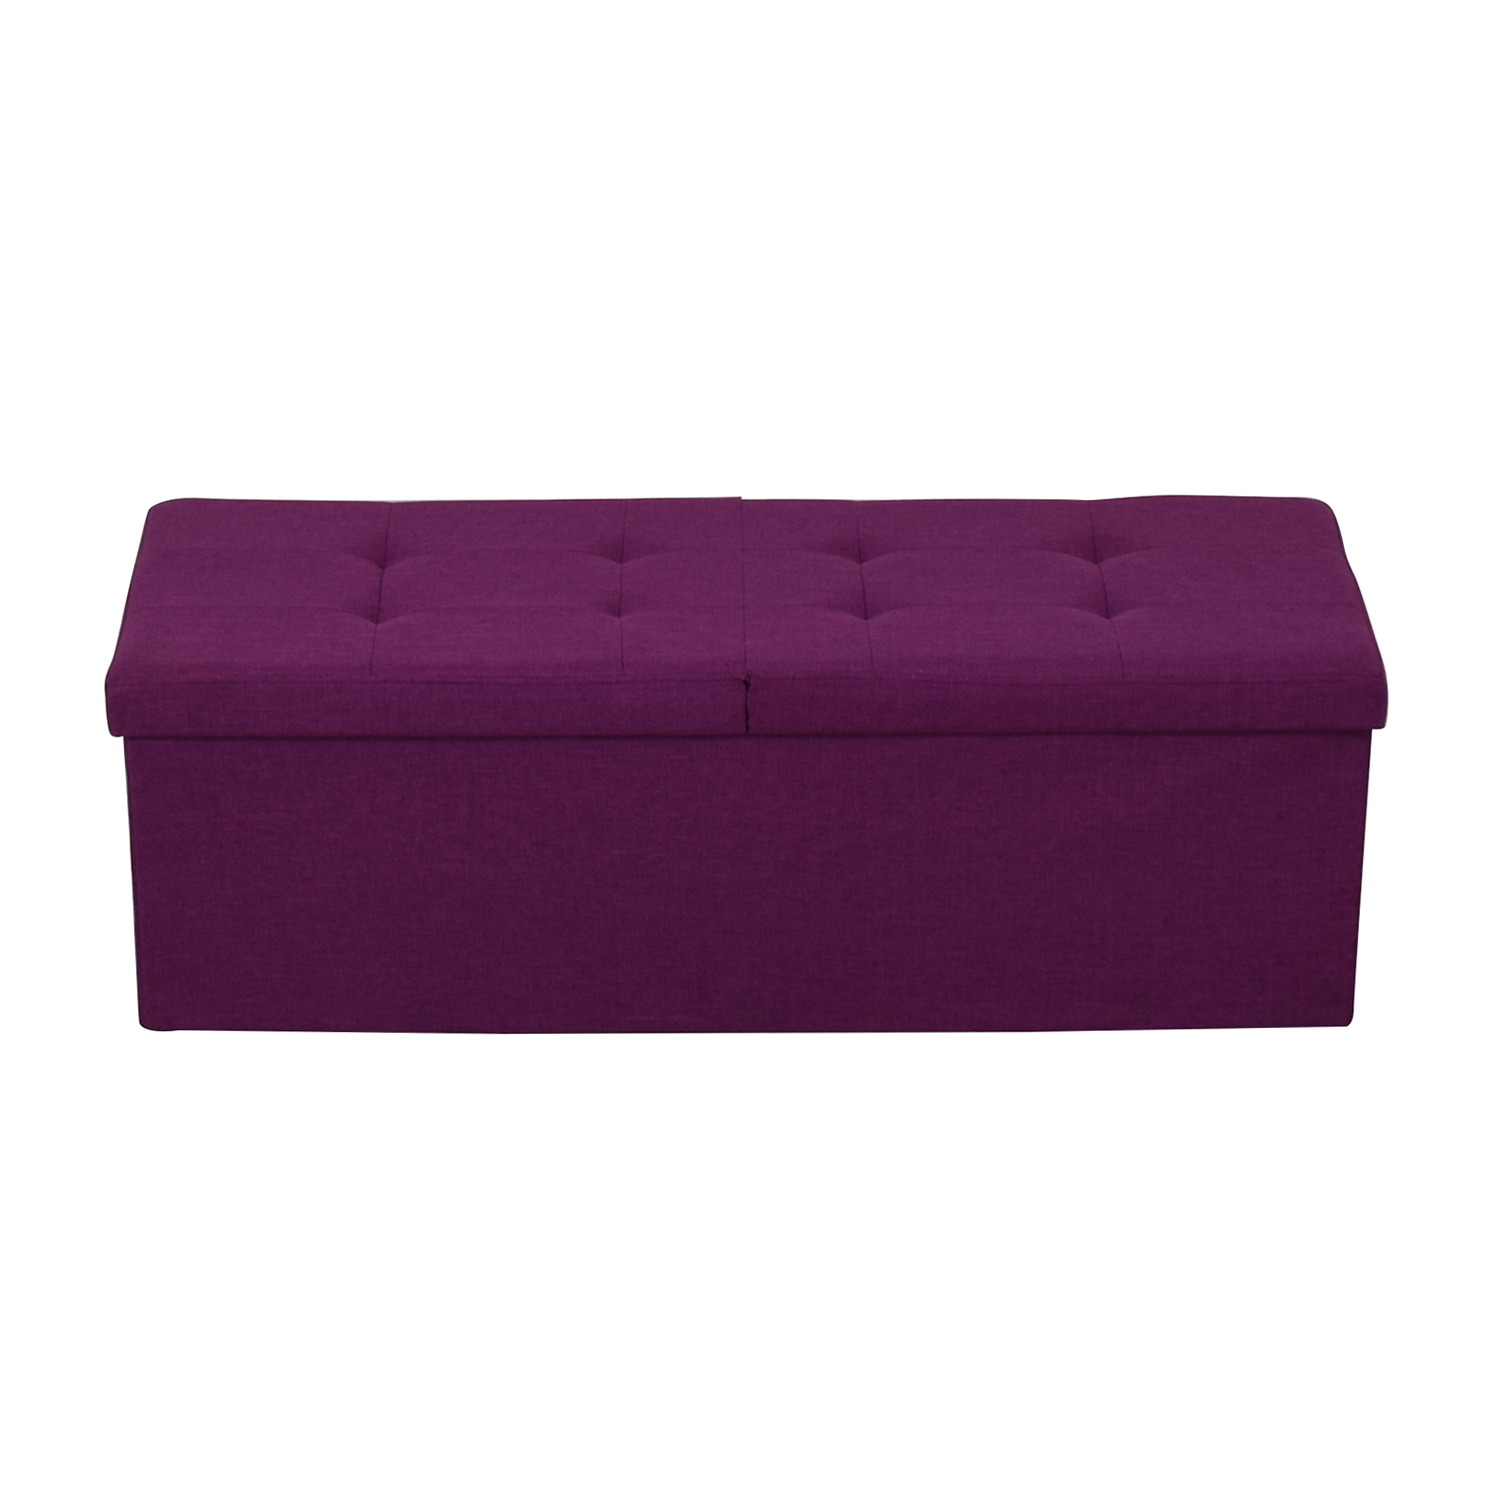 Magenta Tufted Storage Bench purple